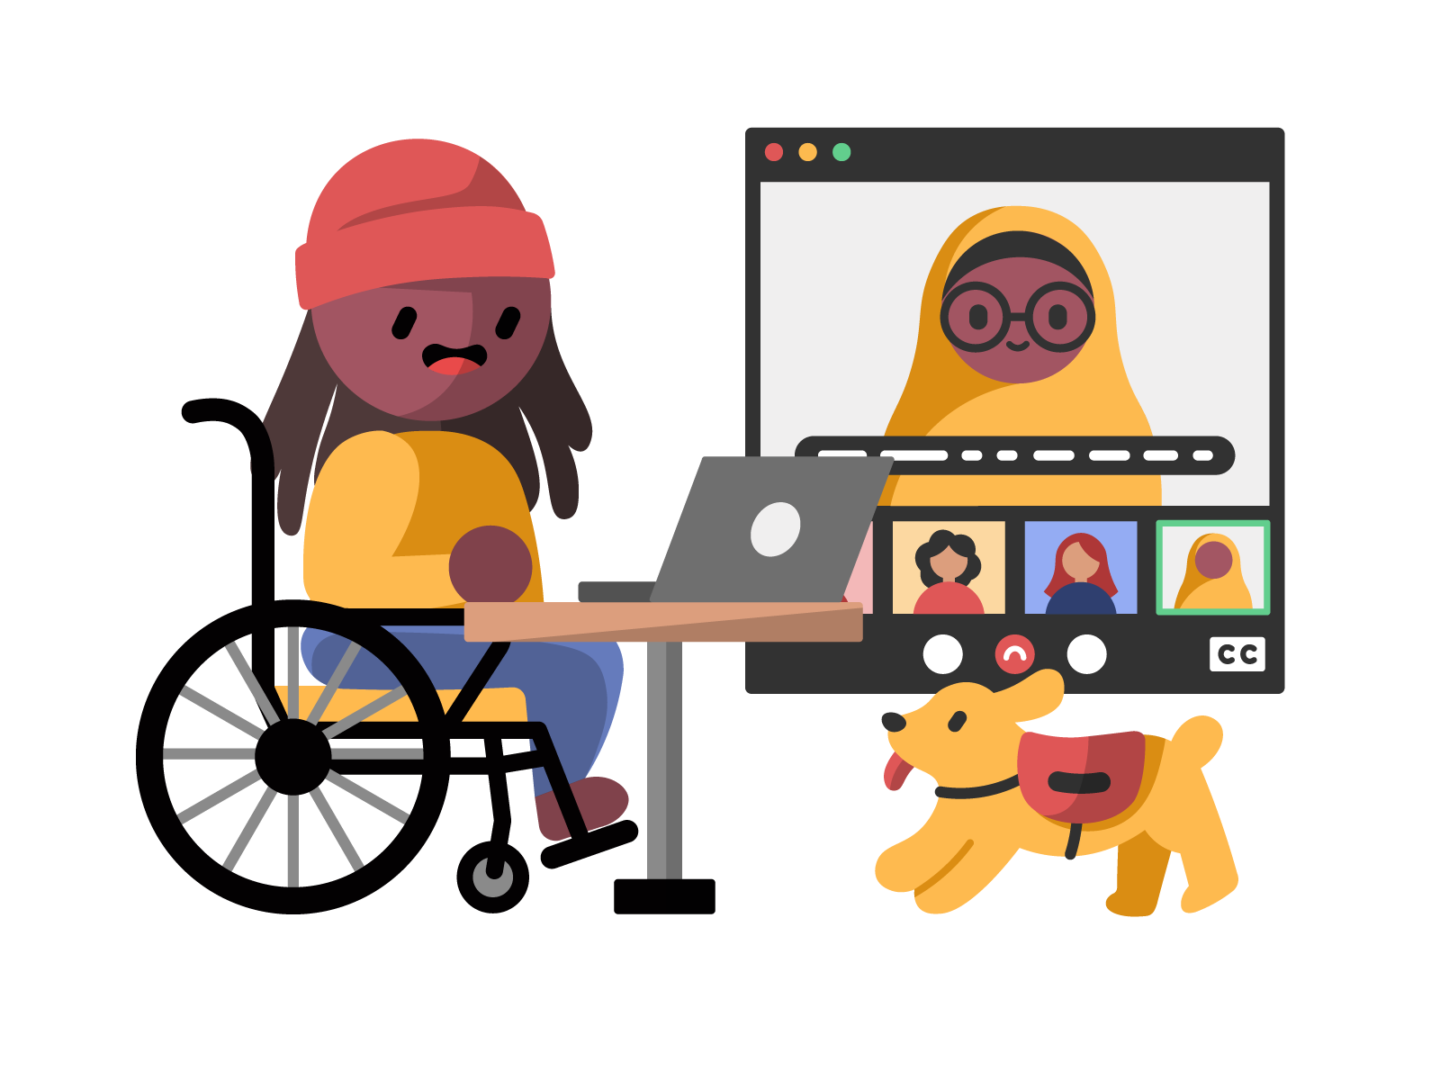 A dark skinned wheelchair user with long hair and a beanie sits at a small table, using their laptop to participate in a video meeting. The laptop screen is shown to their right, with the call being live captioned. The main speaker is a dark skinned person wearing a hijab and glasses, and 3 other participants are at the bottom of the screen, in smaller windows. In the bottom right corner, a yellow service dog bounds towards the wheelchair user.